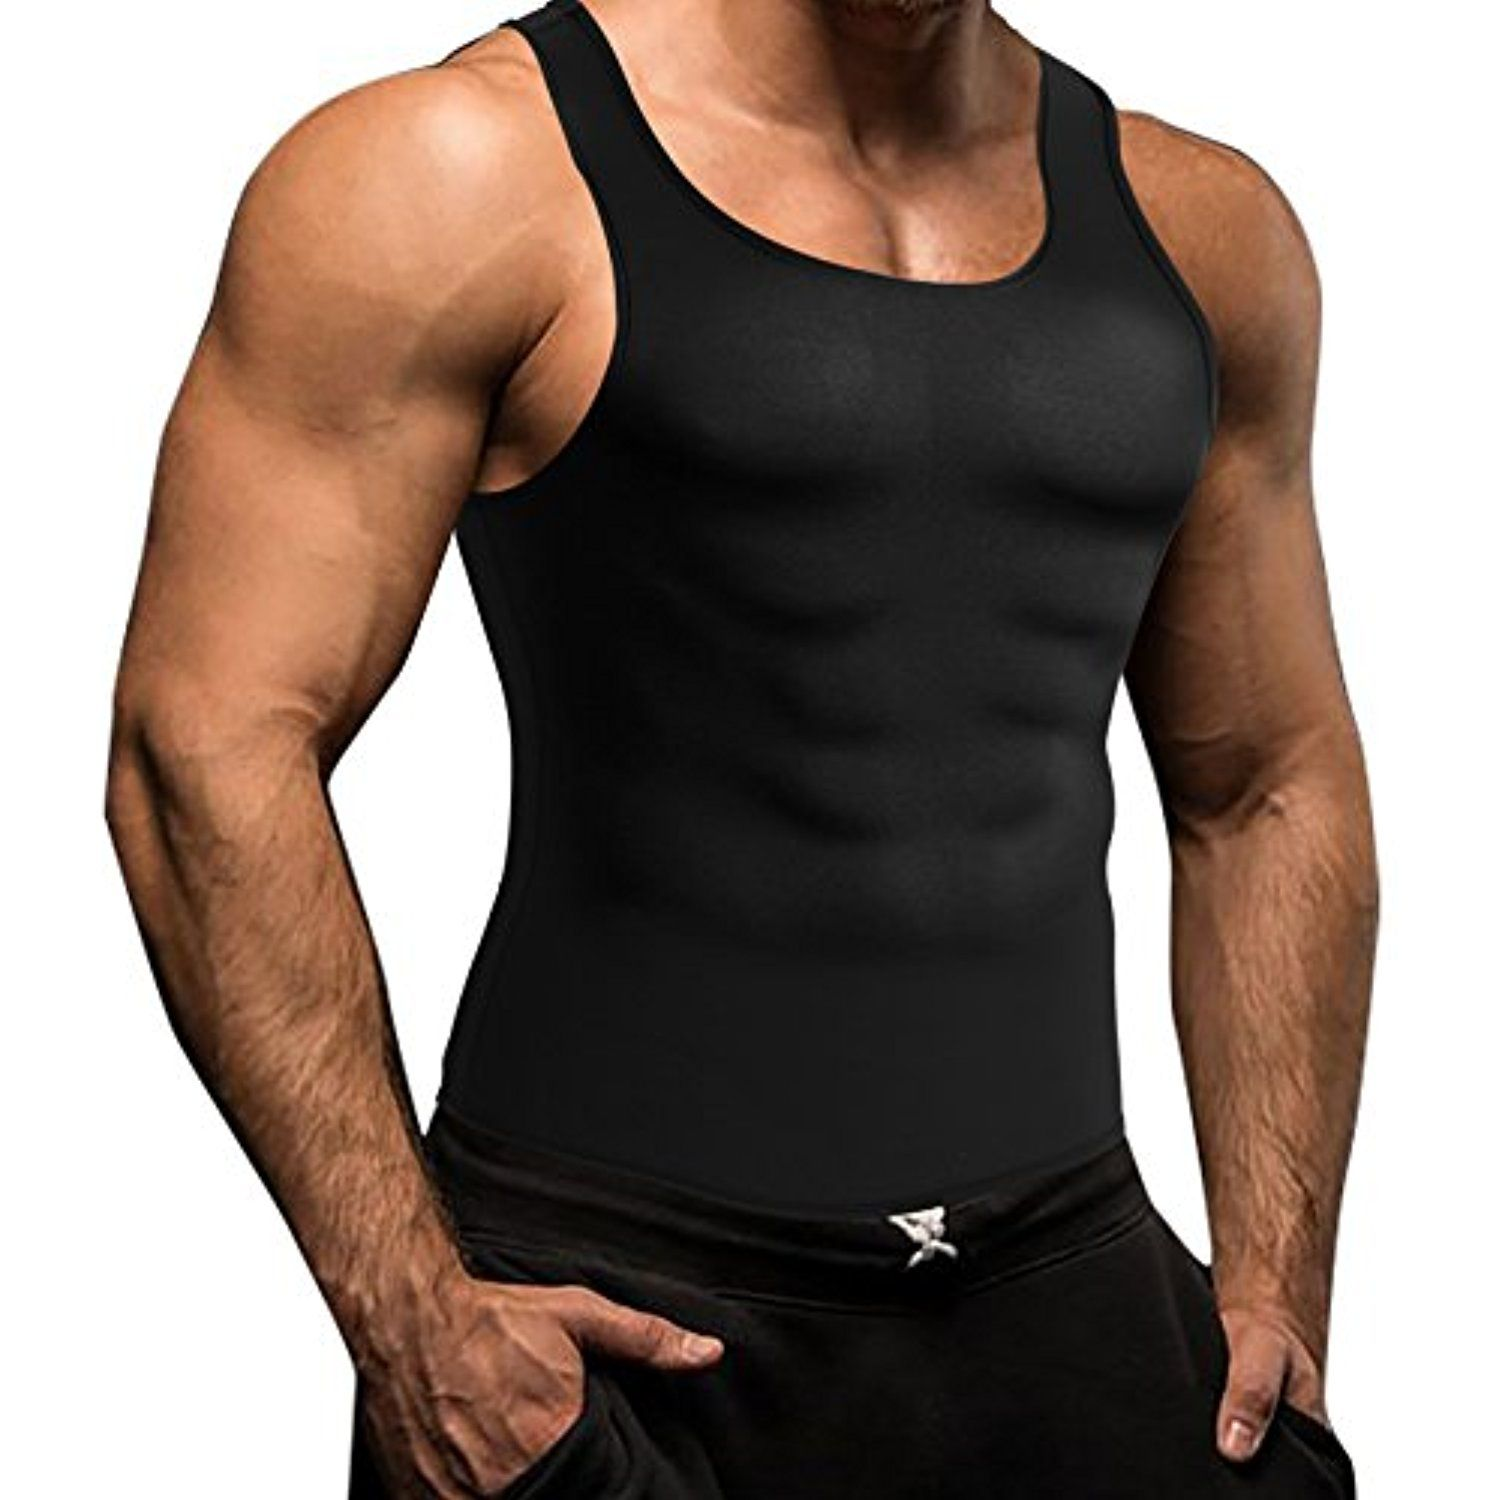 7eb4469a92 Men Waist Trainer Corset Sweat Vest Body Shaper Neoprene Jacket Shirt  Workout Training Mens Cincher Tank Top For Weight Loss    You can find more  details by ...